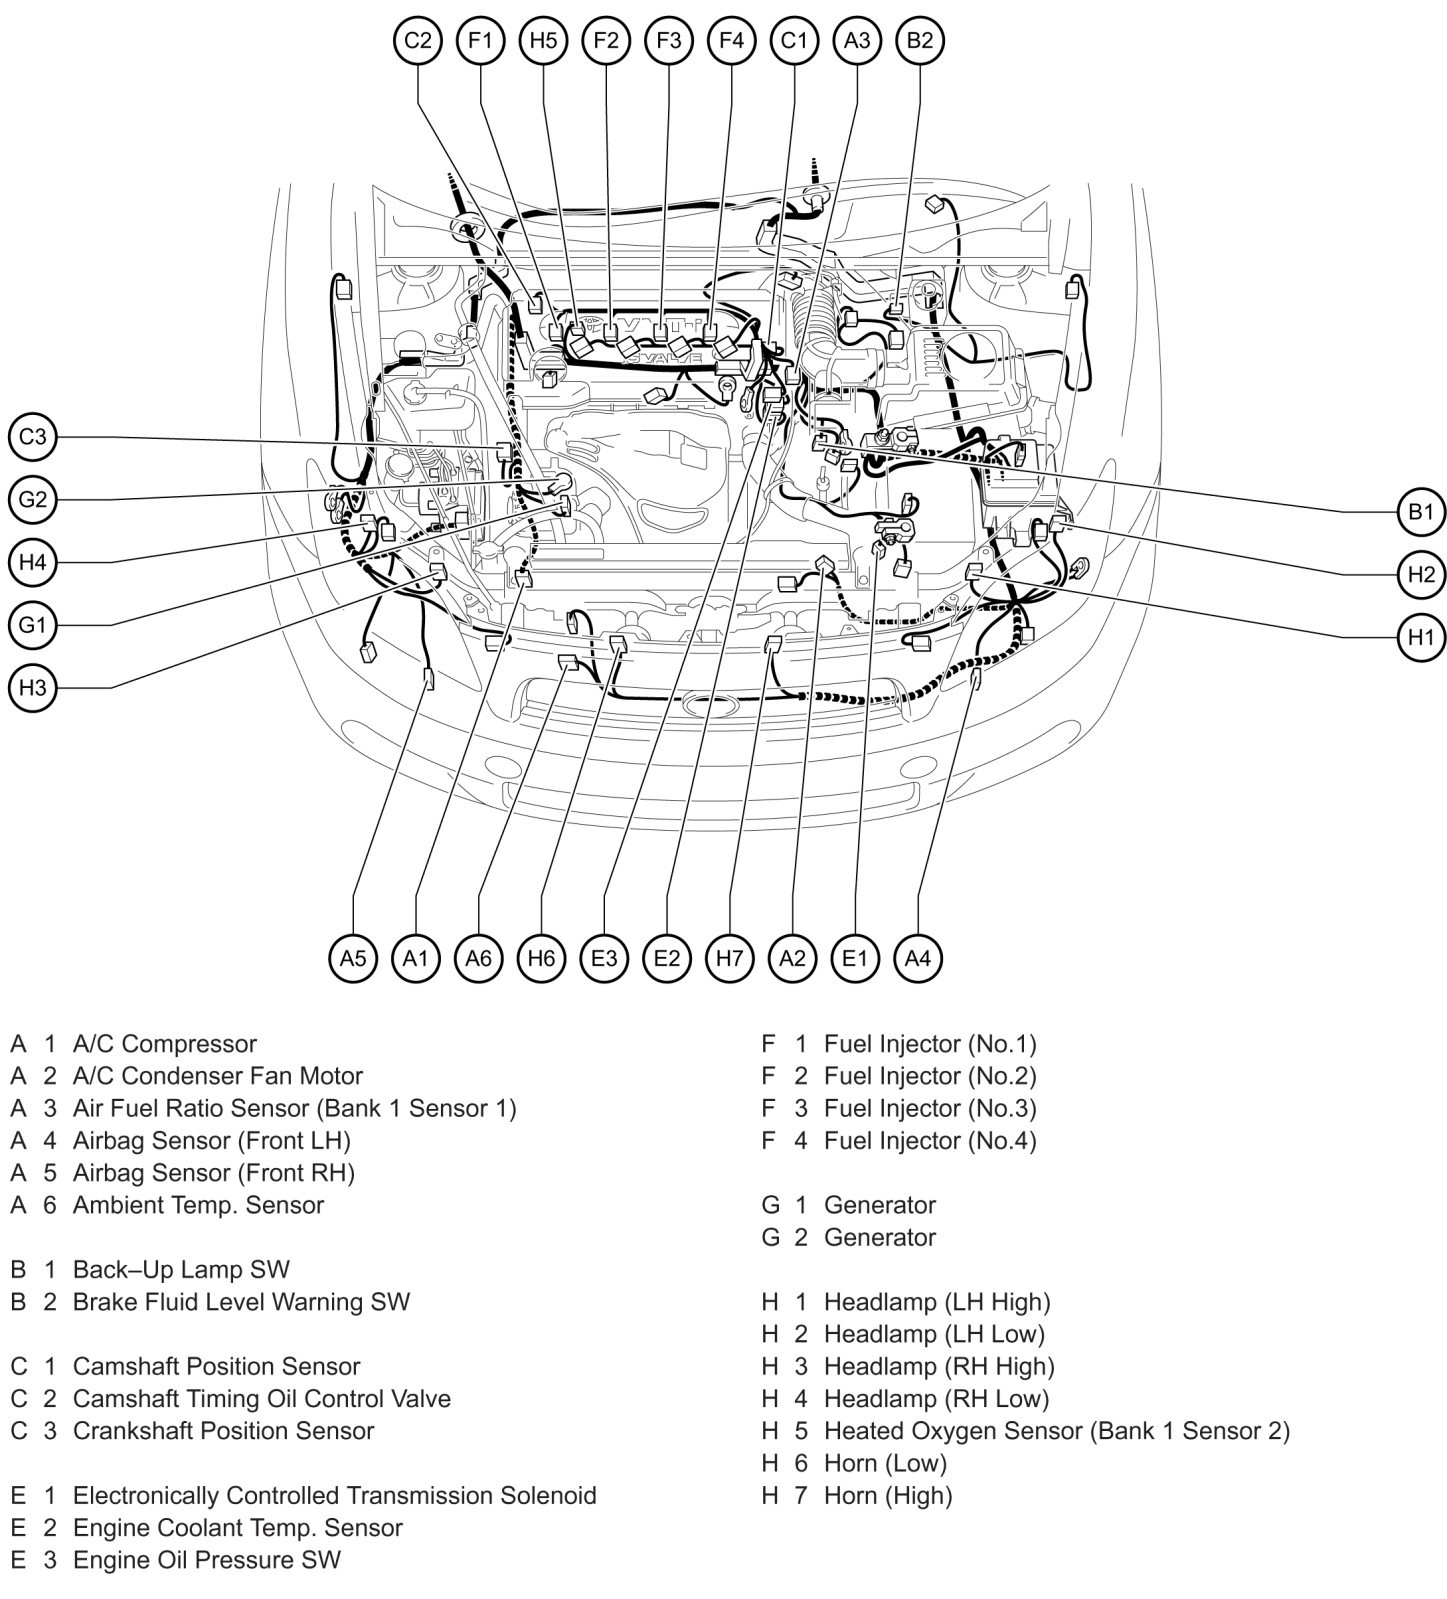 2007 Scion Tc Wiring Diagram Trusted Wiring Diagrams \u2022 2011 Scion TC  Wiring Diagrams Scion Tc Radio Wiring Diagram